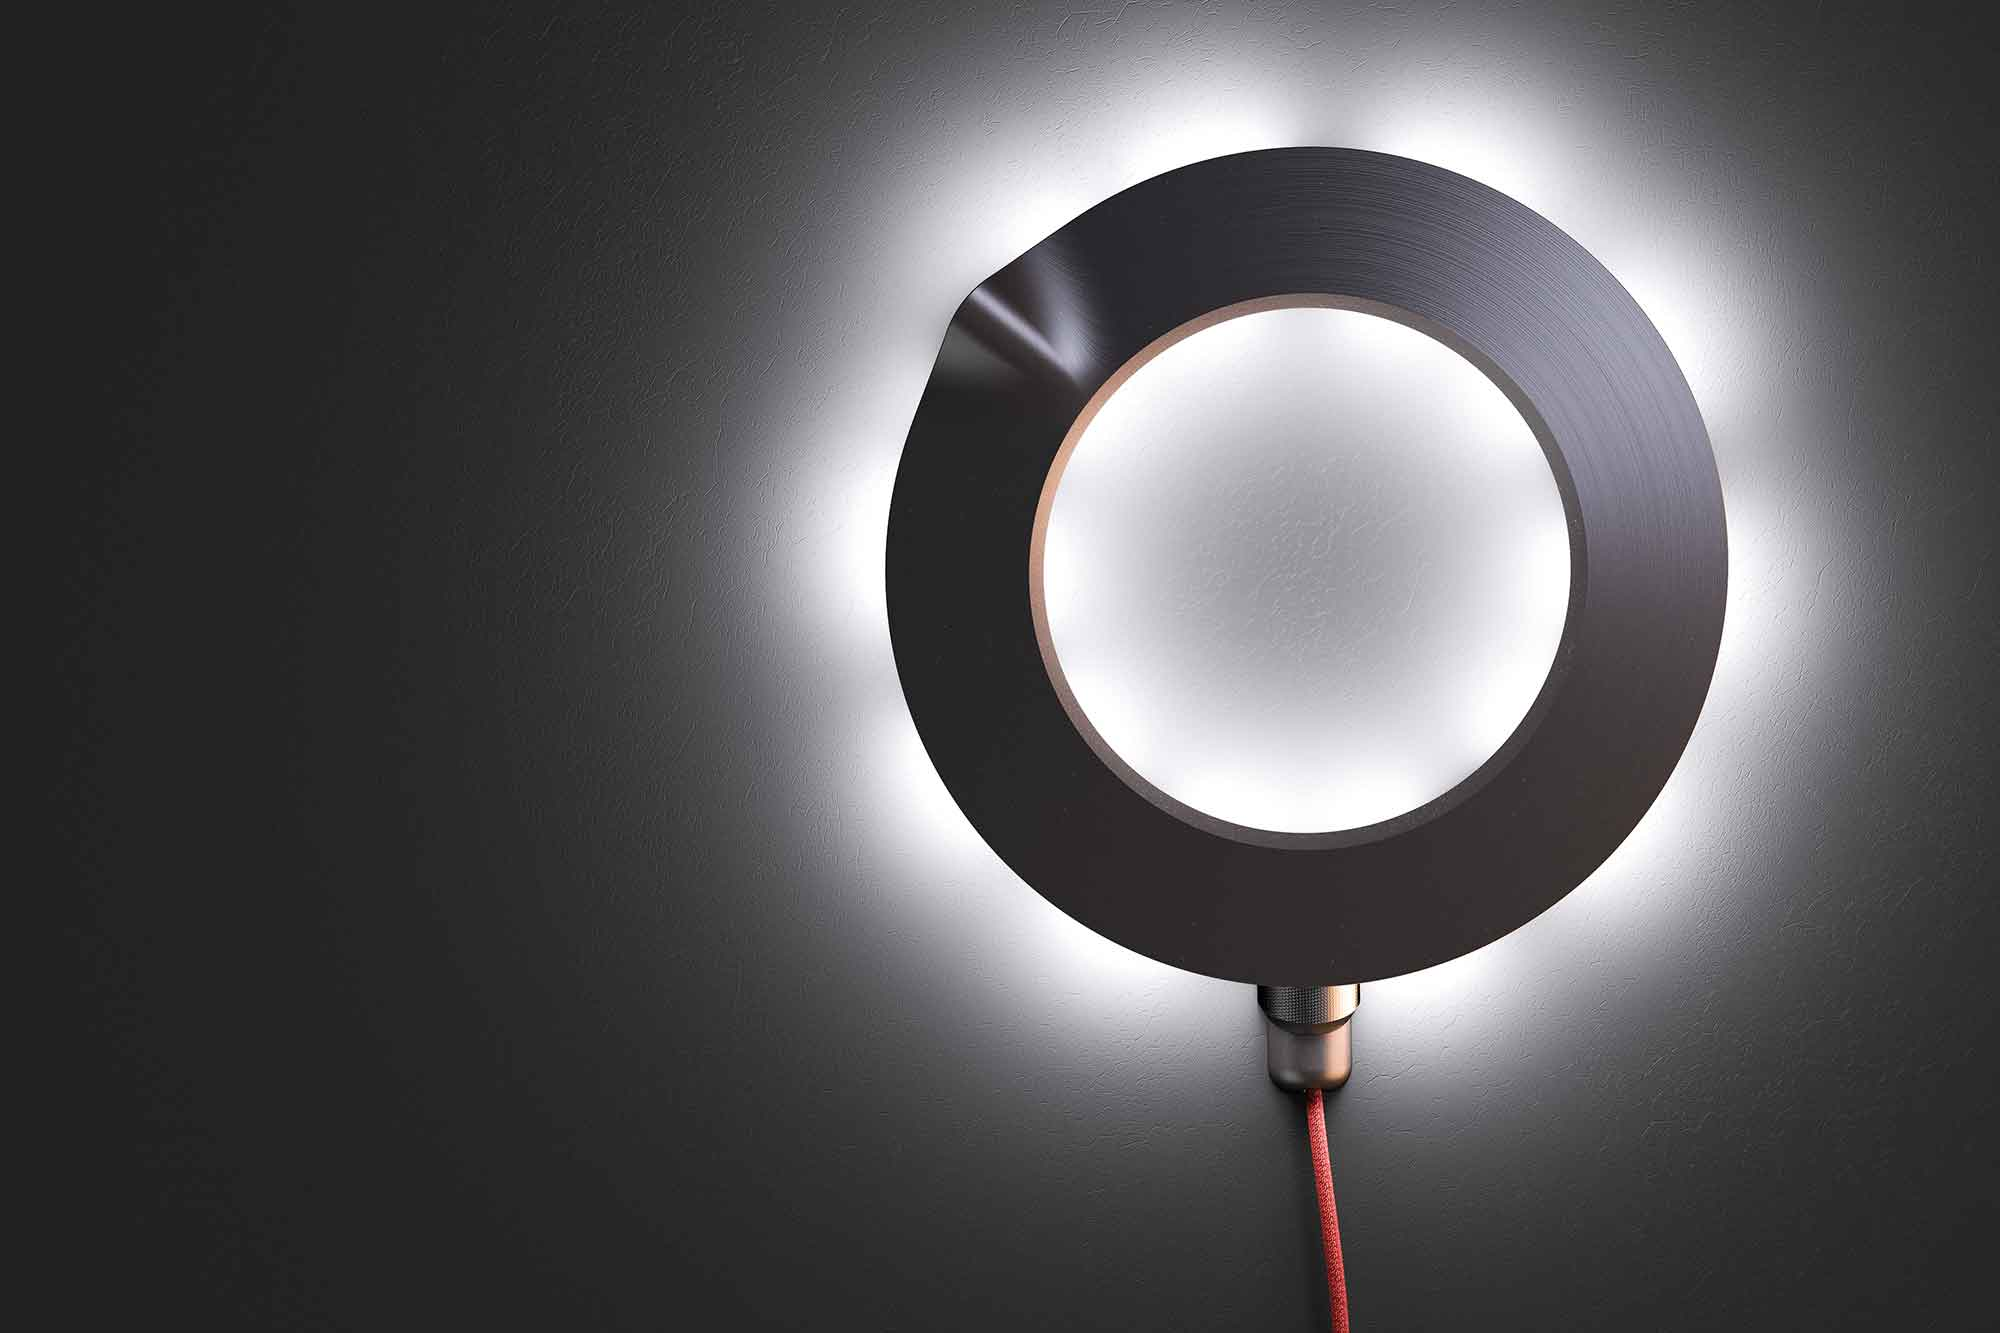 The wall lamp has LED lights on the inside and outside of the ring - If it is a significant memory, the light spreads across the room to indicate importance.